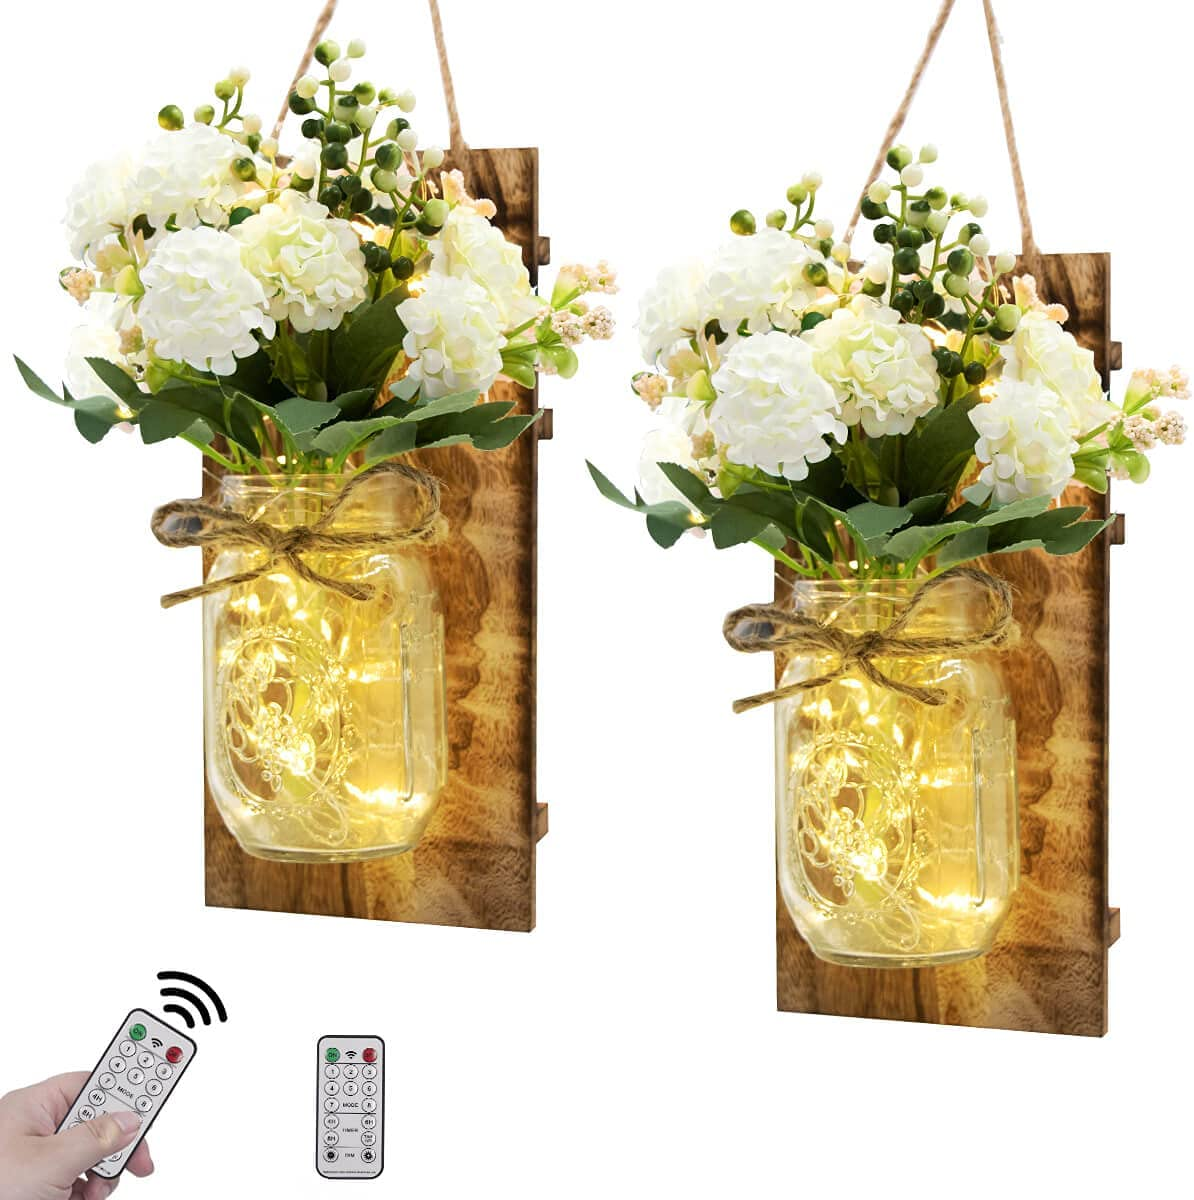 VIEFIN Farmhouse Mason Jar Sconces Wall Decor,Rustic Home Decor Wall Art Hanging Mason Jar Decor with Remote Control LED Fairy Lights and White Hydrangea for Home Decorations(2 Pack,White)